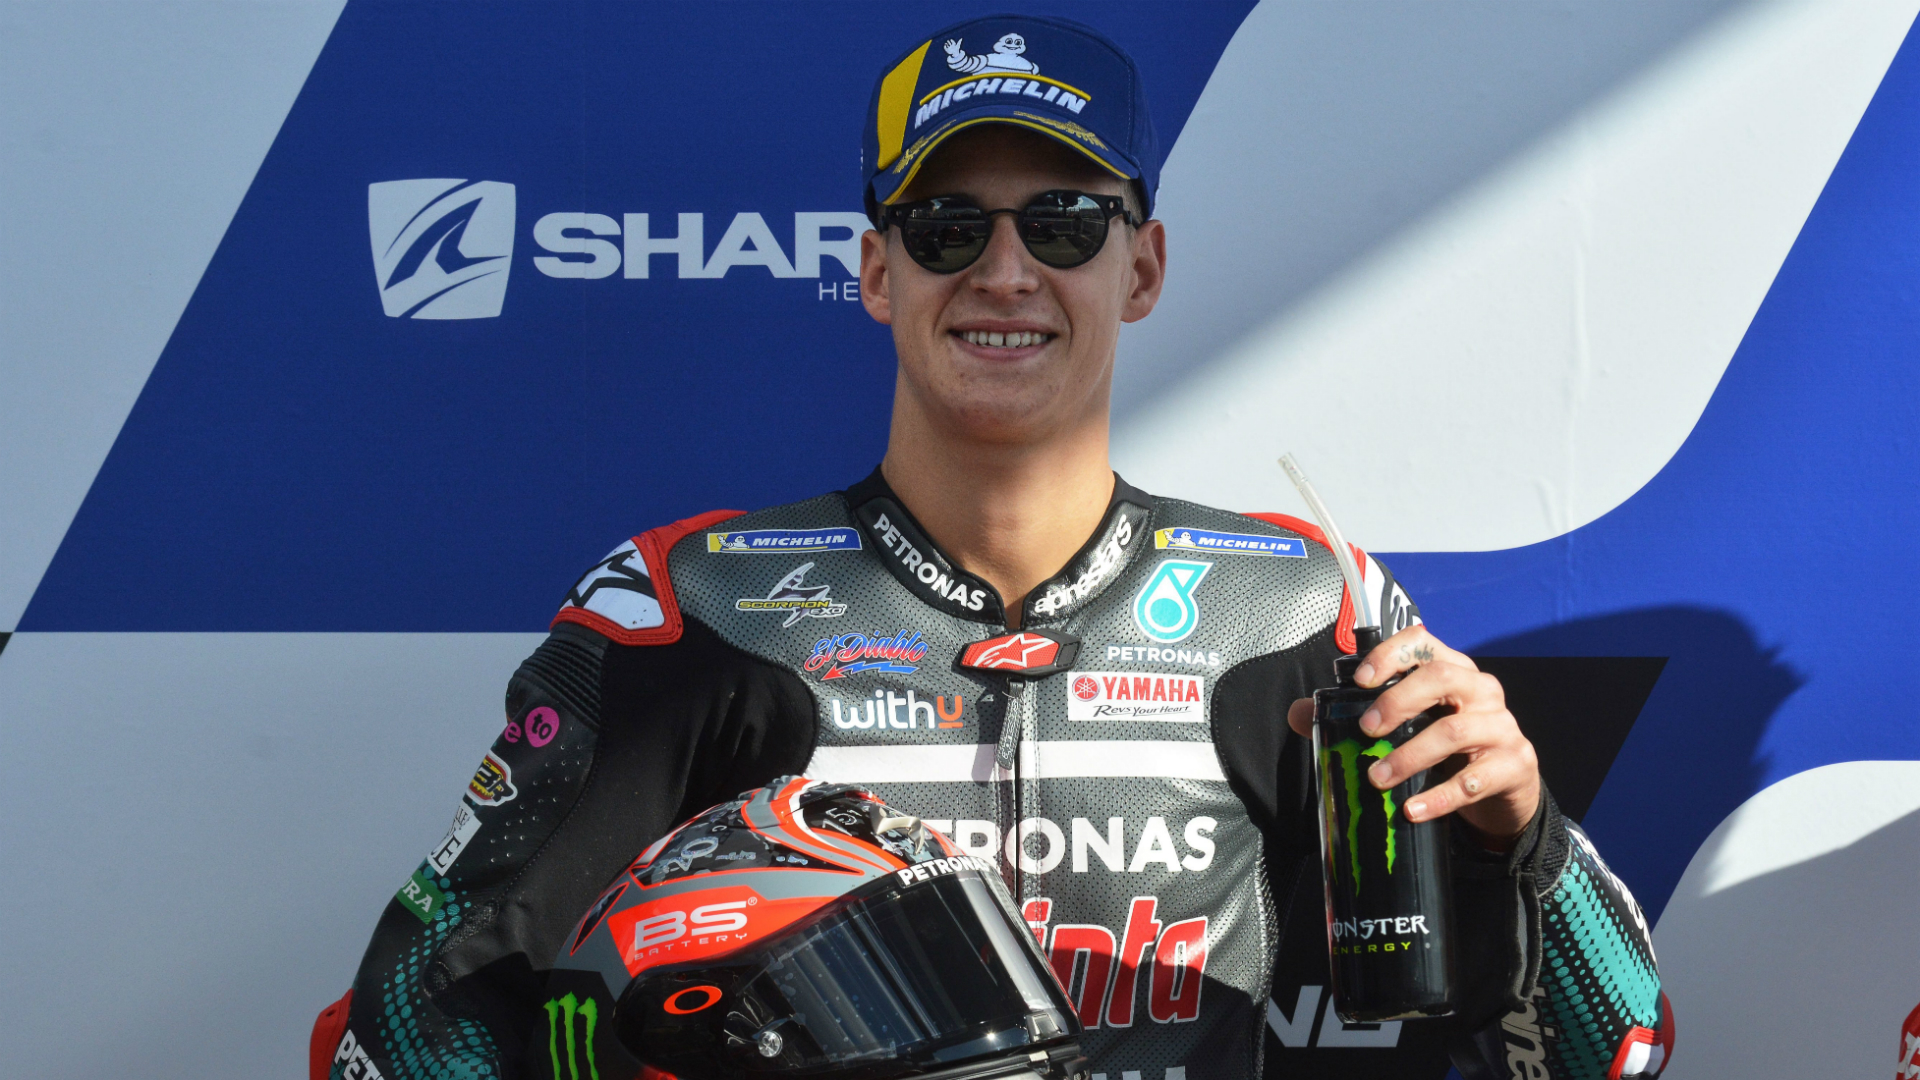 MotoGP 2020: Starting grid and race preview for the French Grand Prix